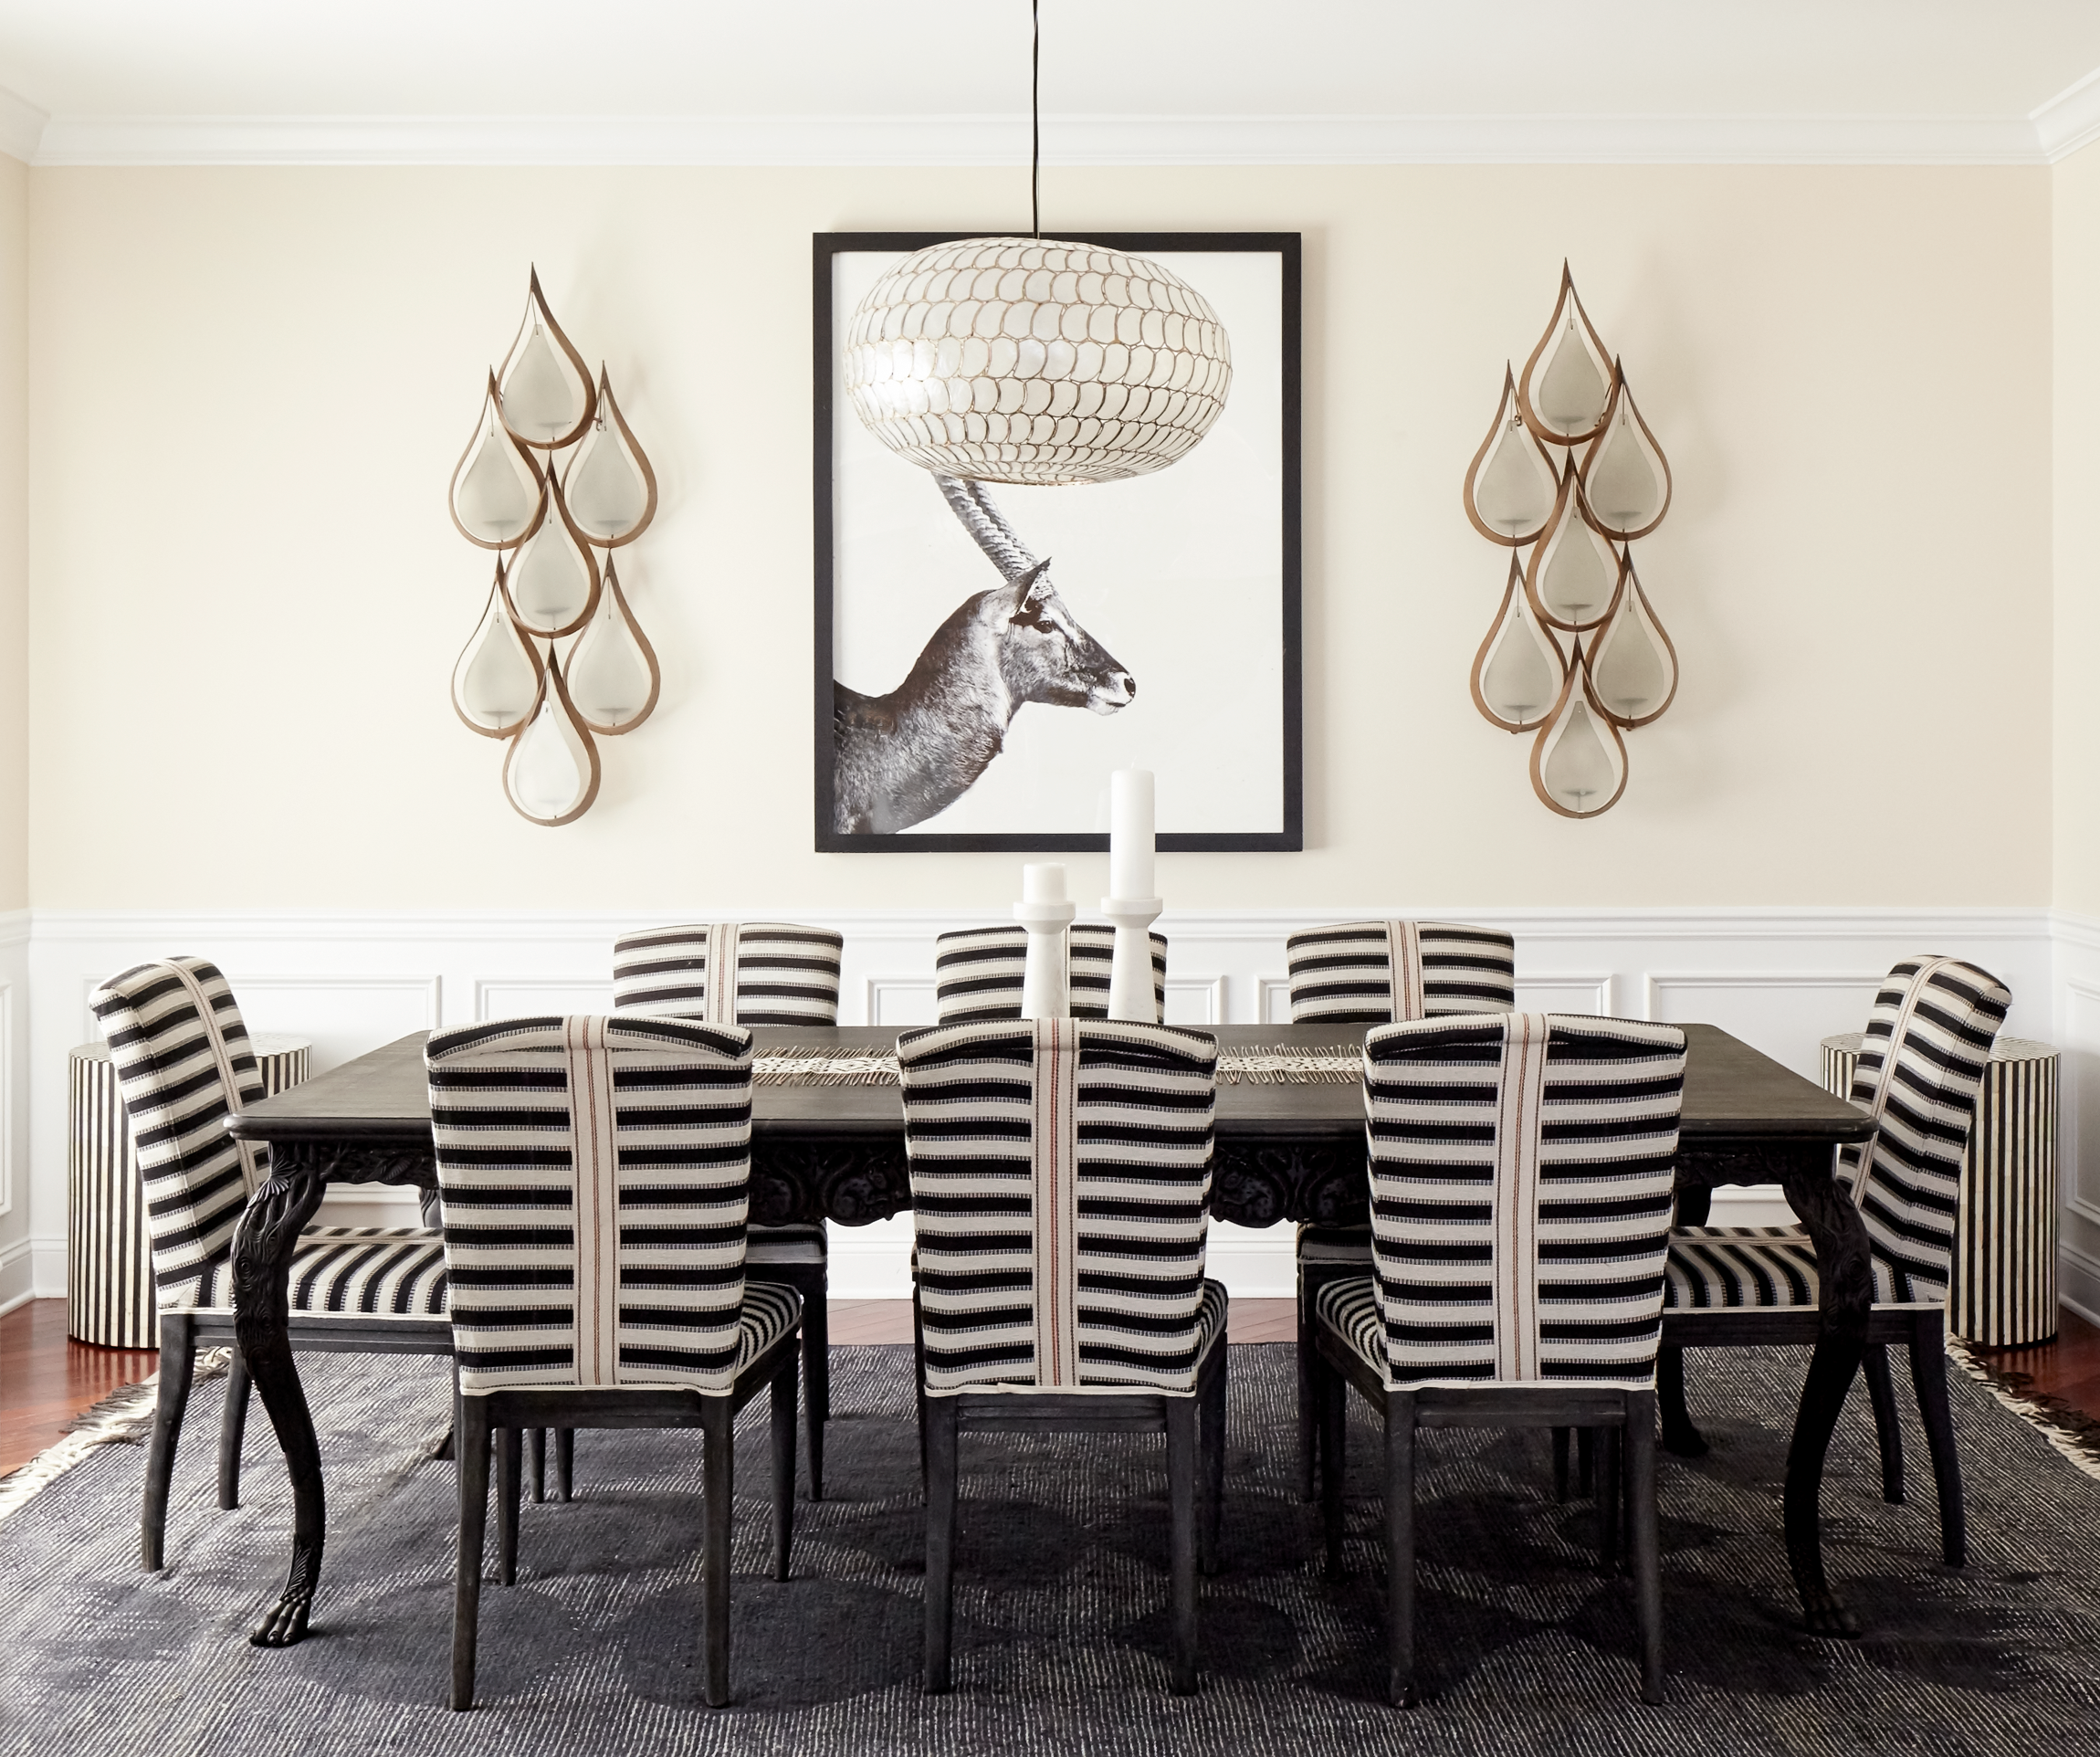 newhaven_dining_room_03_web.jpg